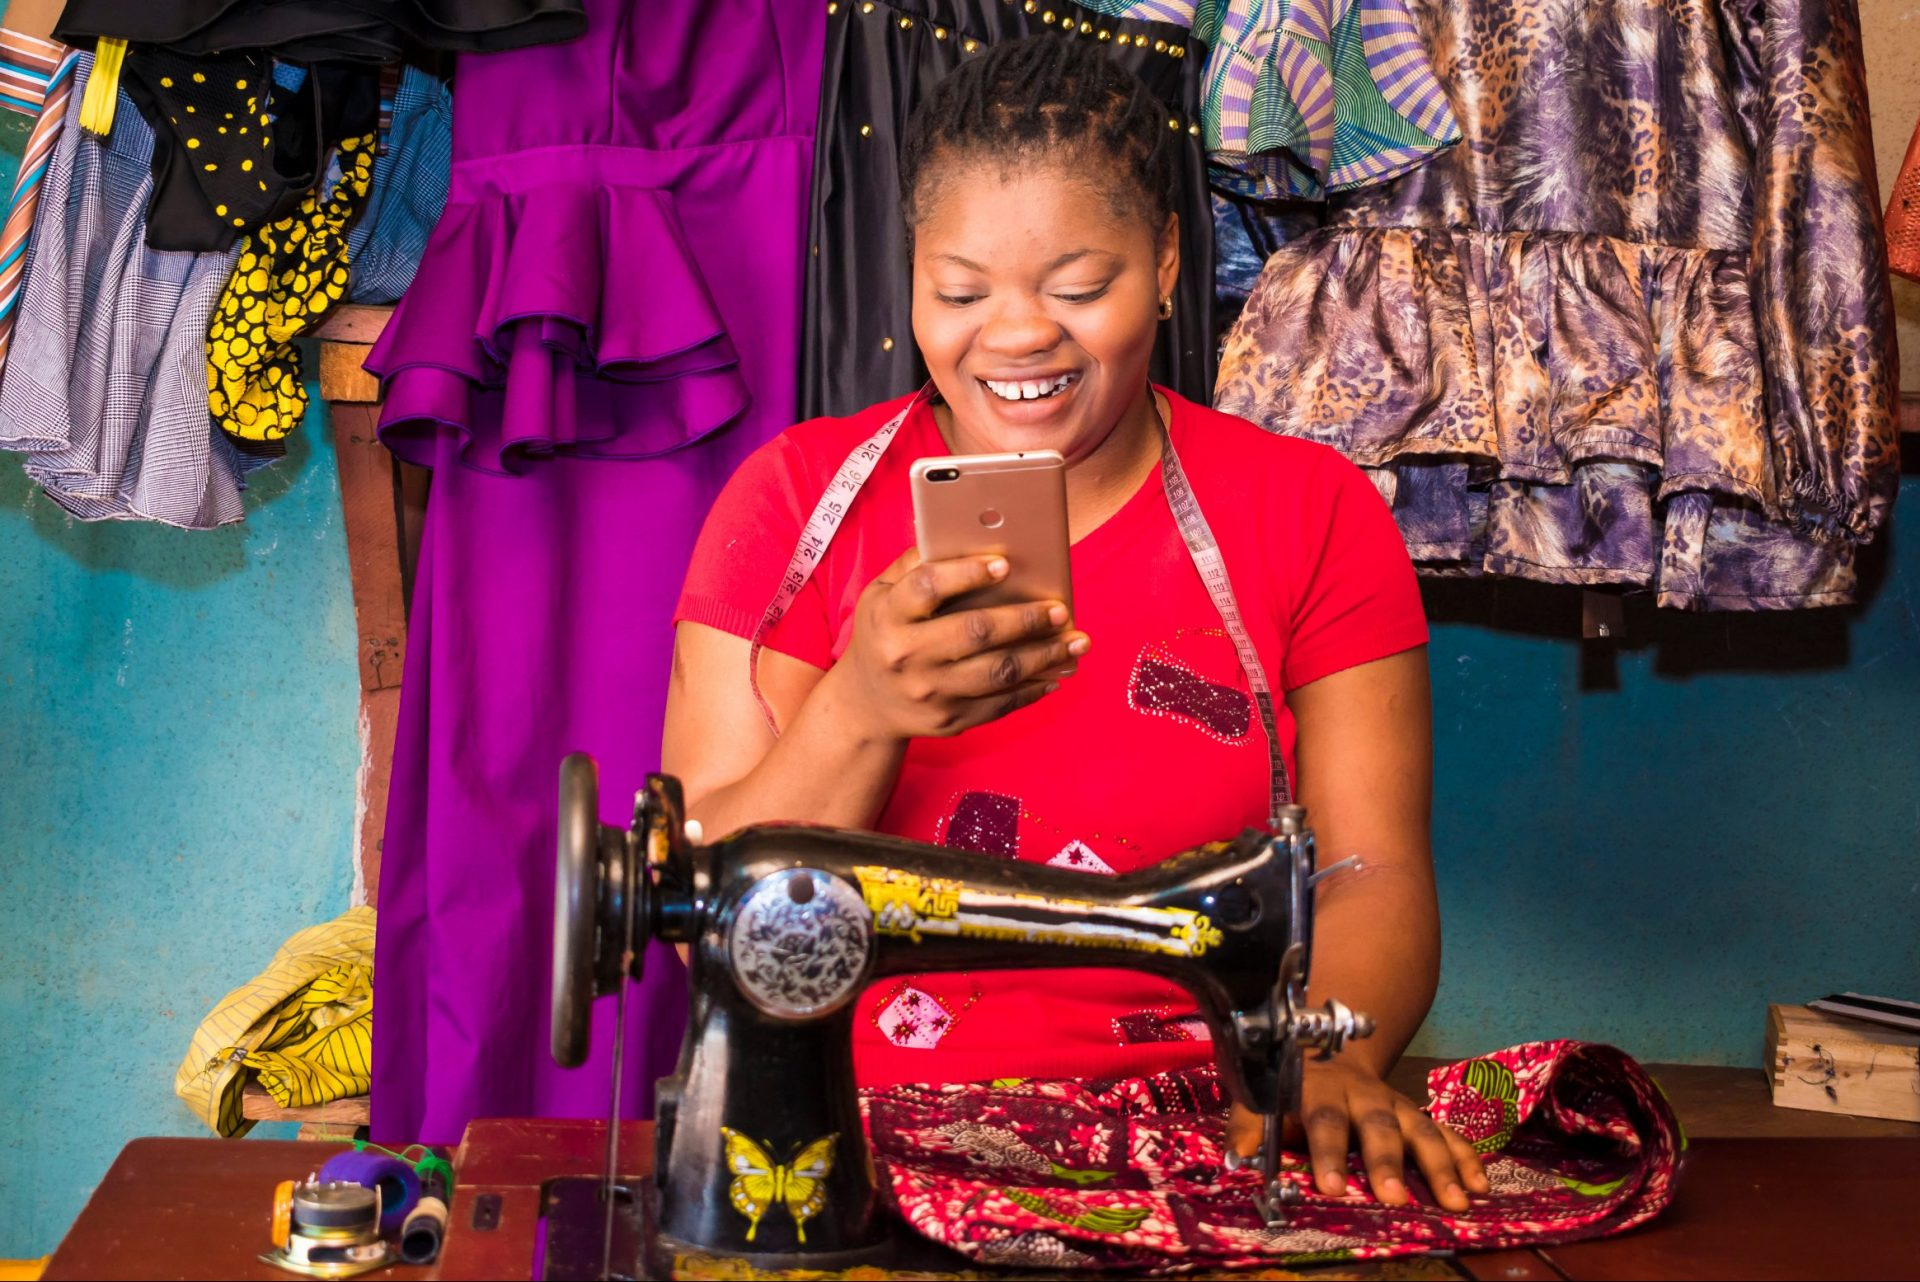 Sole trader tailor looking at smartphone